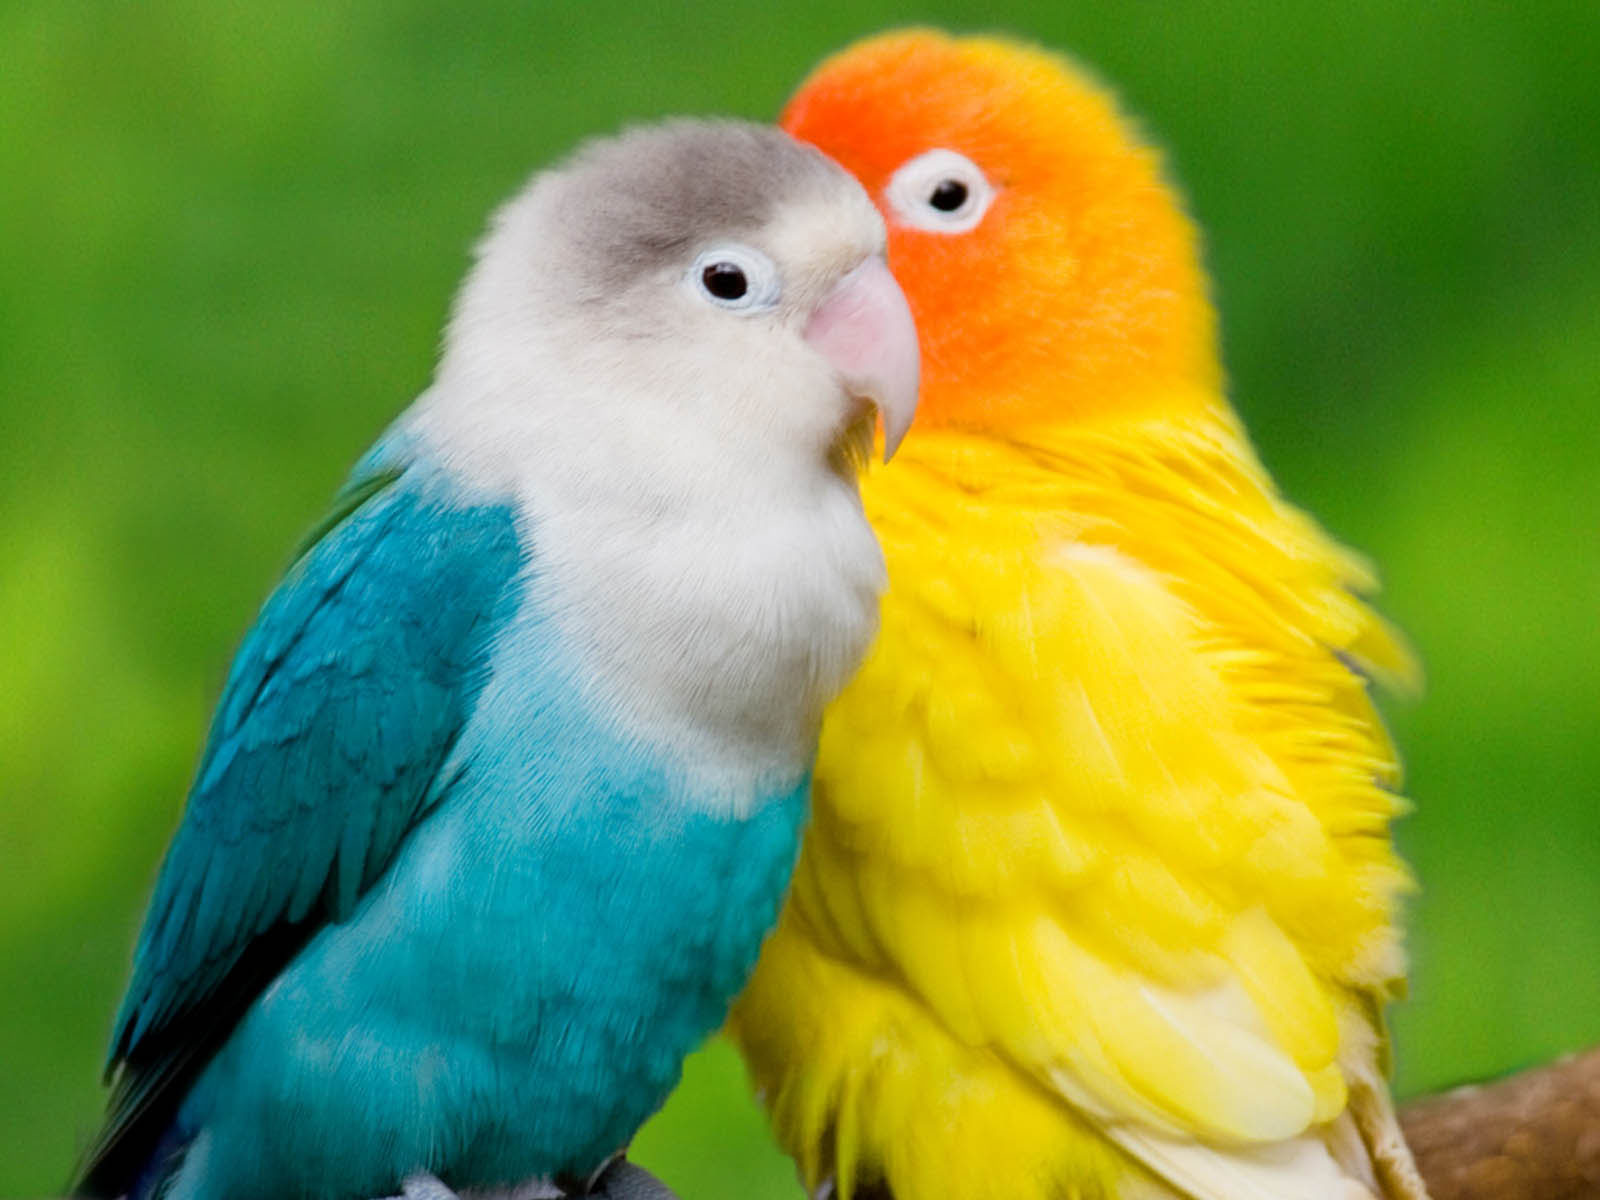 desktop wallpapers: colourful parrots desktop wallpapers - larry